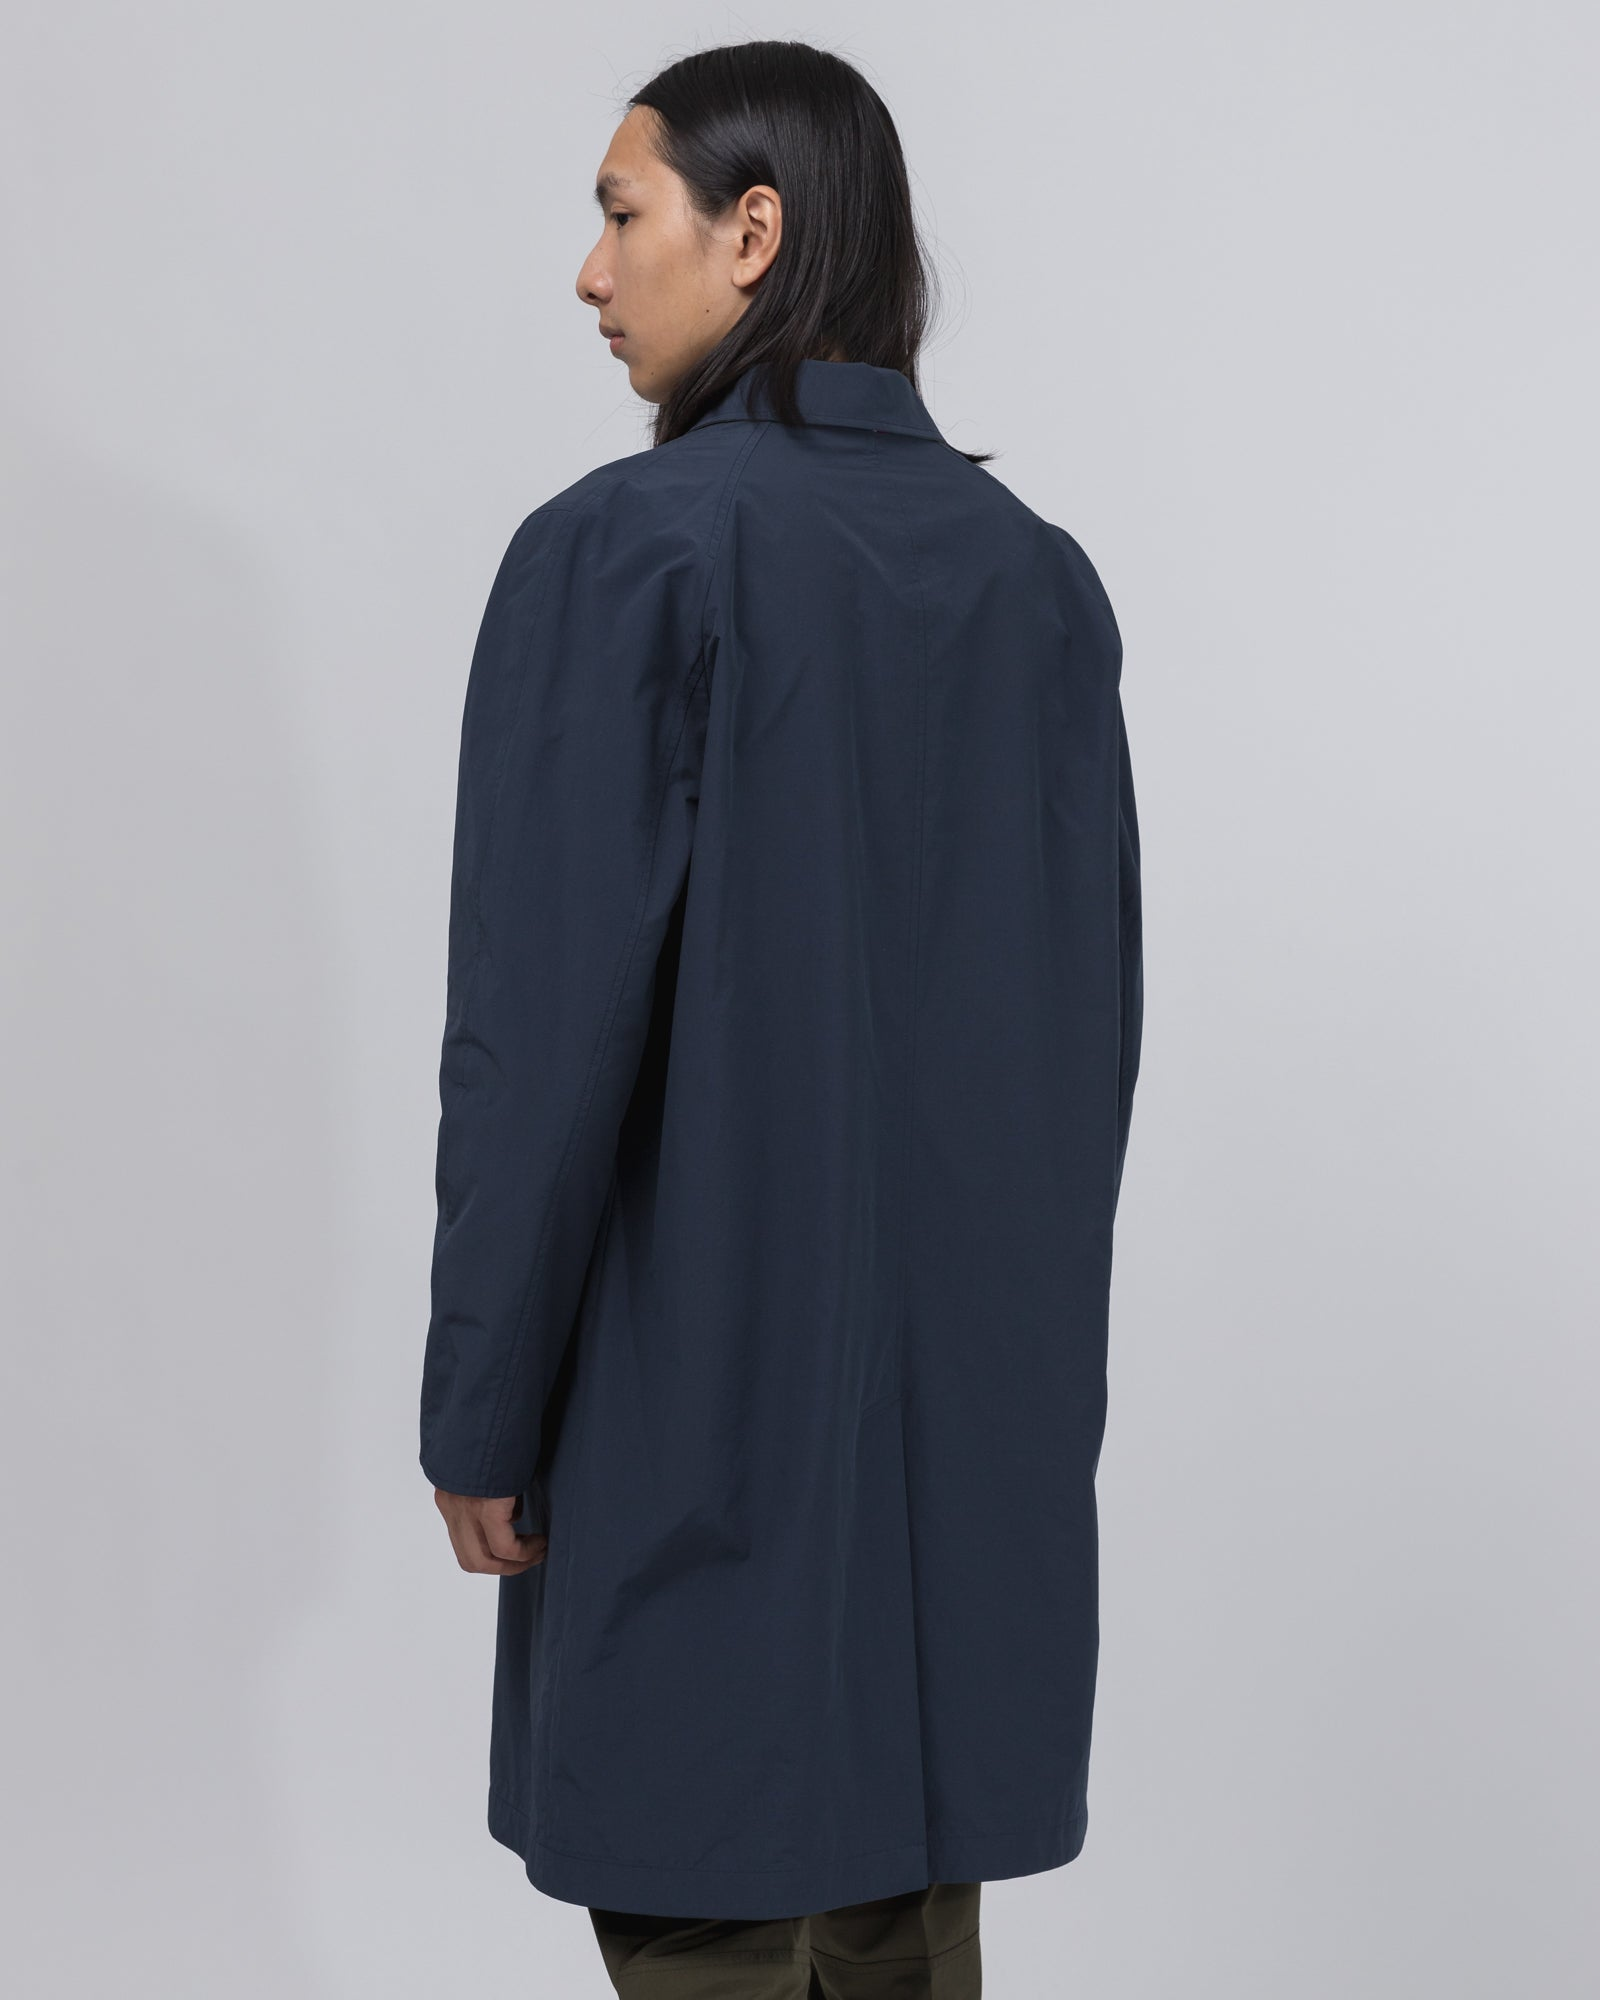 Roth Jacket in Navy